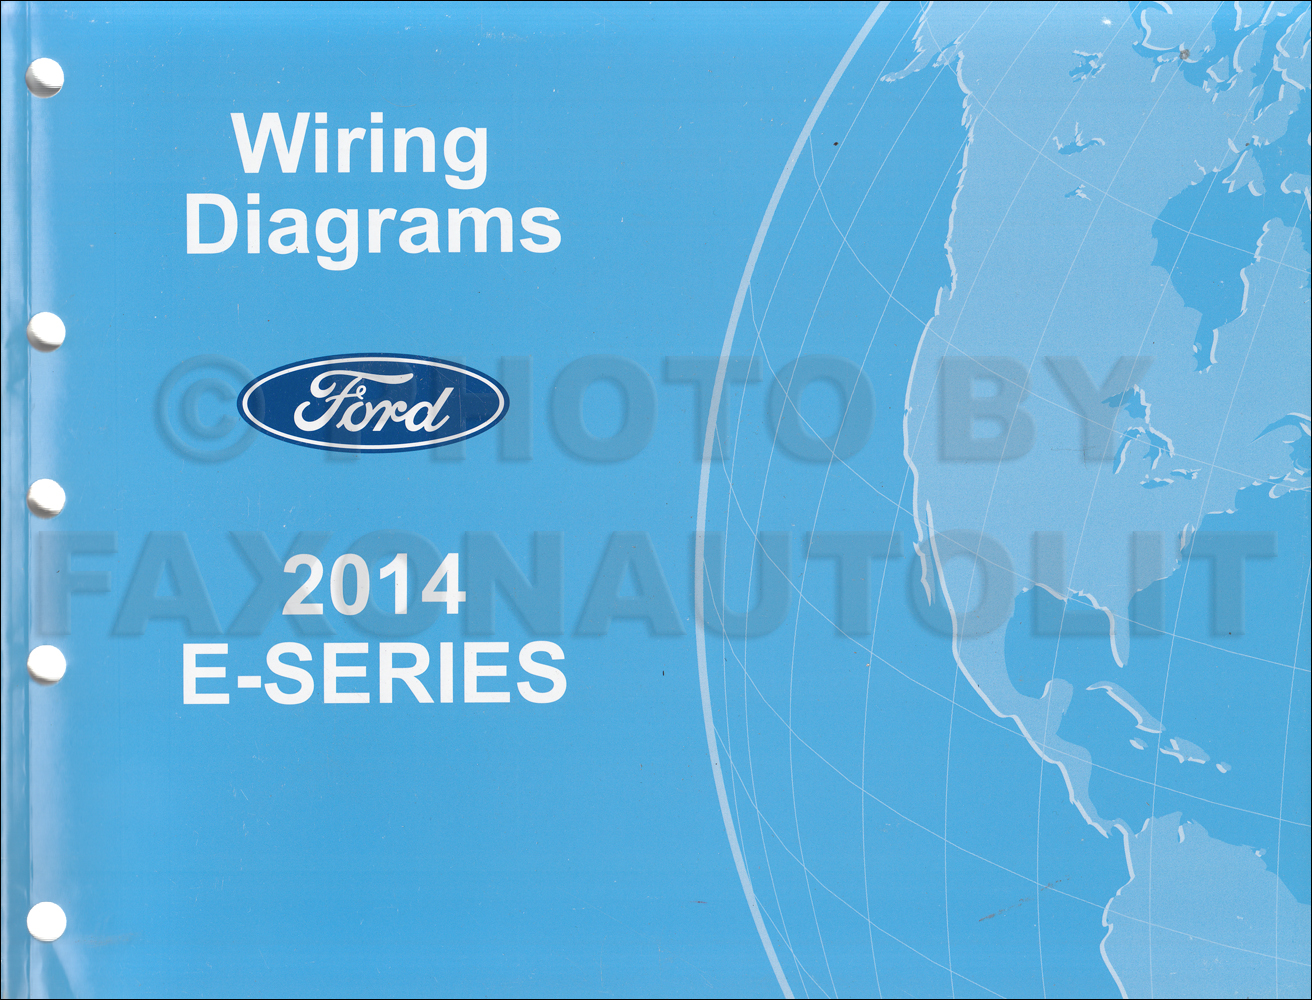 Ford E 450 Wiring Diagrams Wire Data Schema 1993 F150 Fuse Box Diagram 2014 Econoline Manual Original Van E150 E250 Rh Faxonautoliterature Com E450 For Fuel Pump